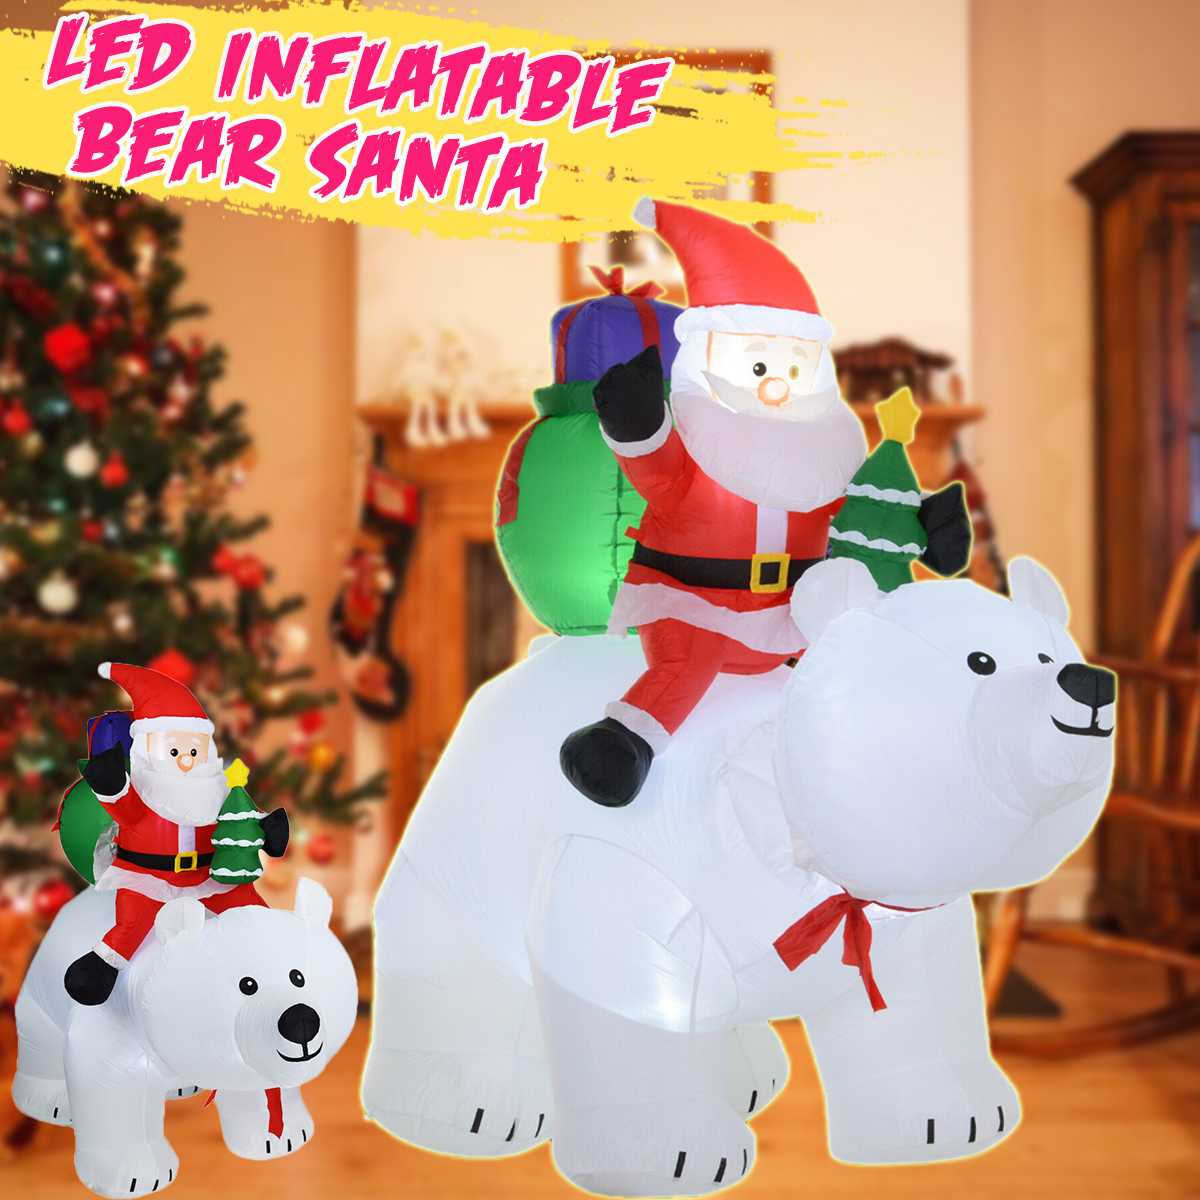 LED Glowing Inflatable Santa Claus Riding Polar Bear Christmas Inflatable Doll for Kids Gift Toys Garden Outdoor Home Decor